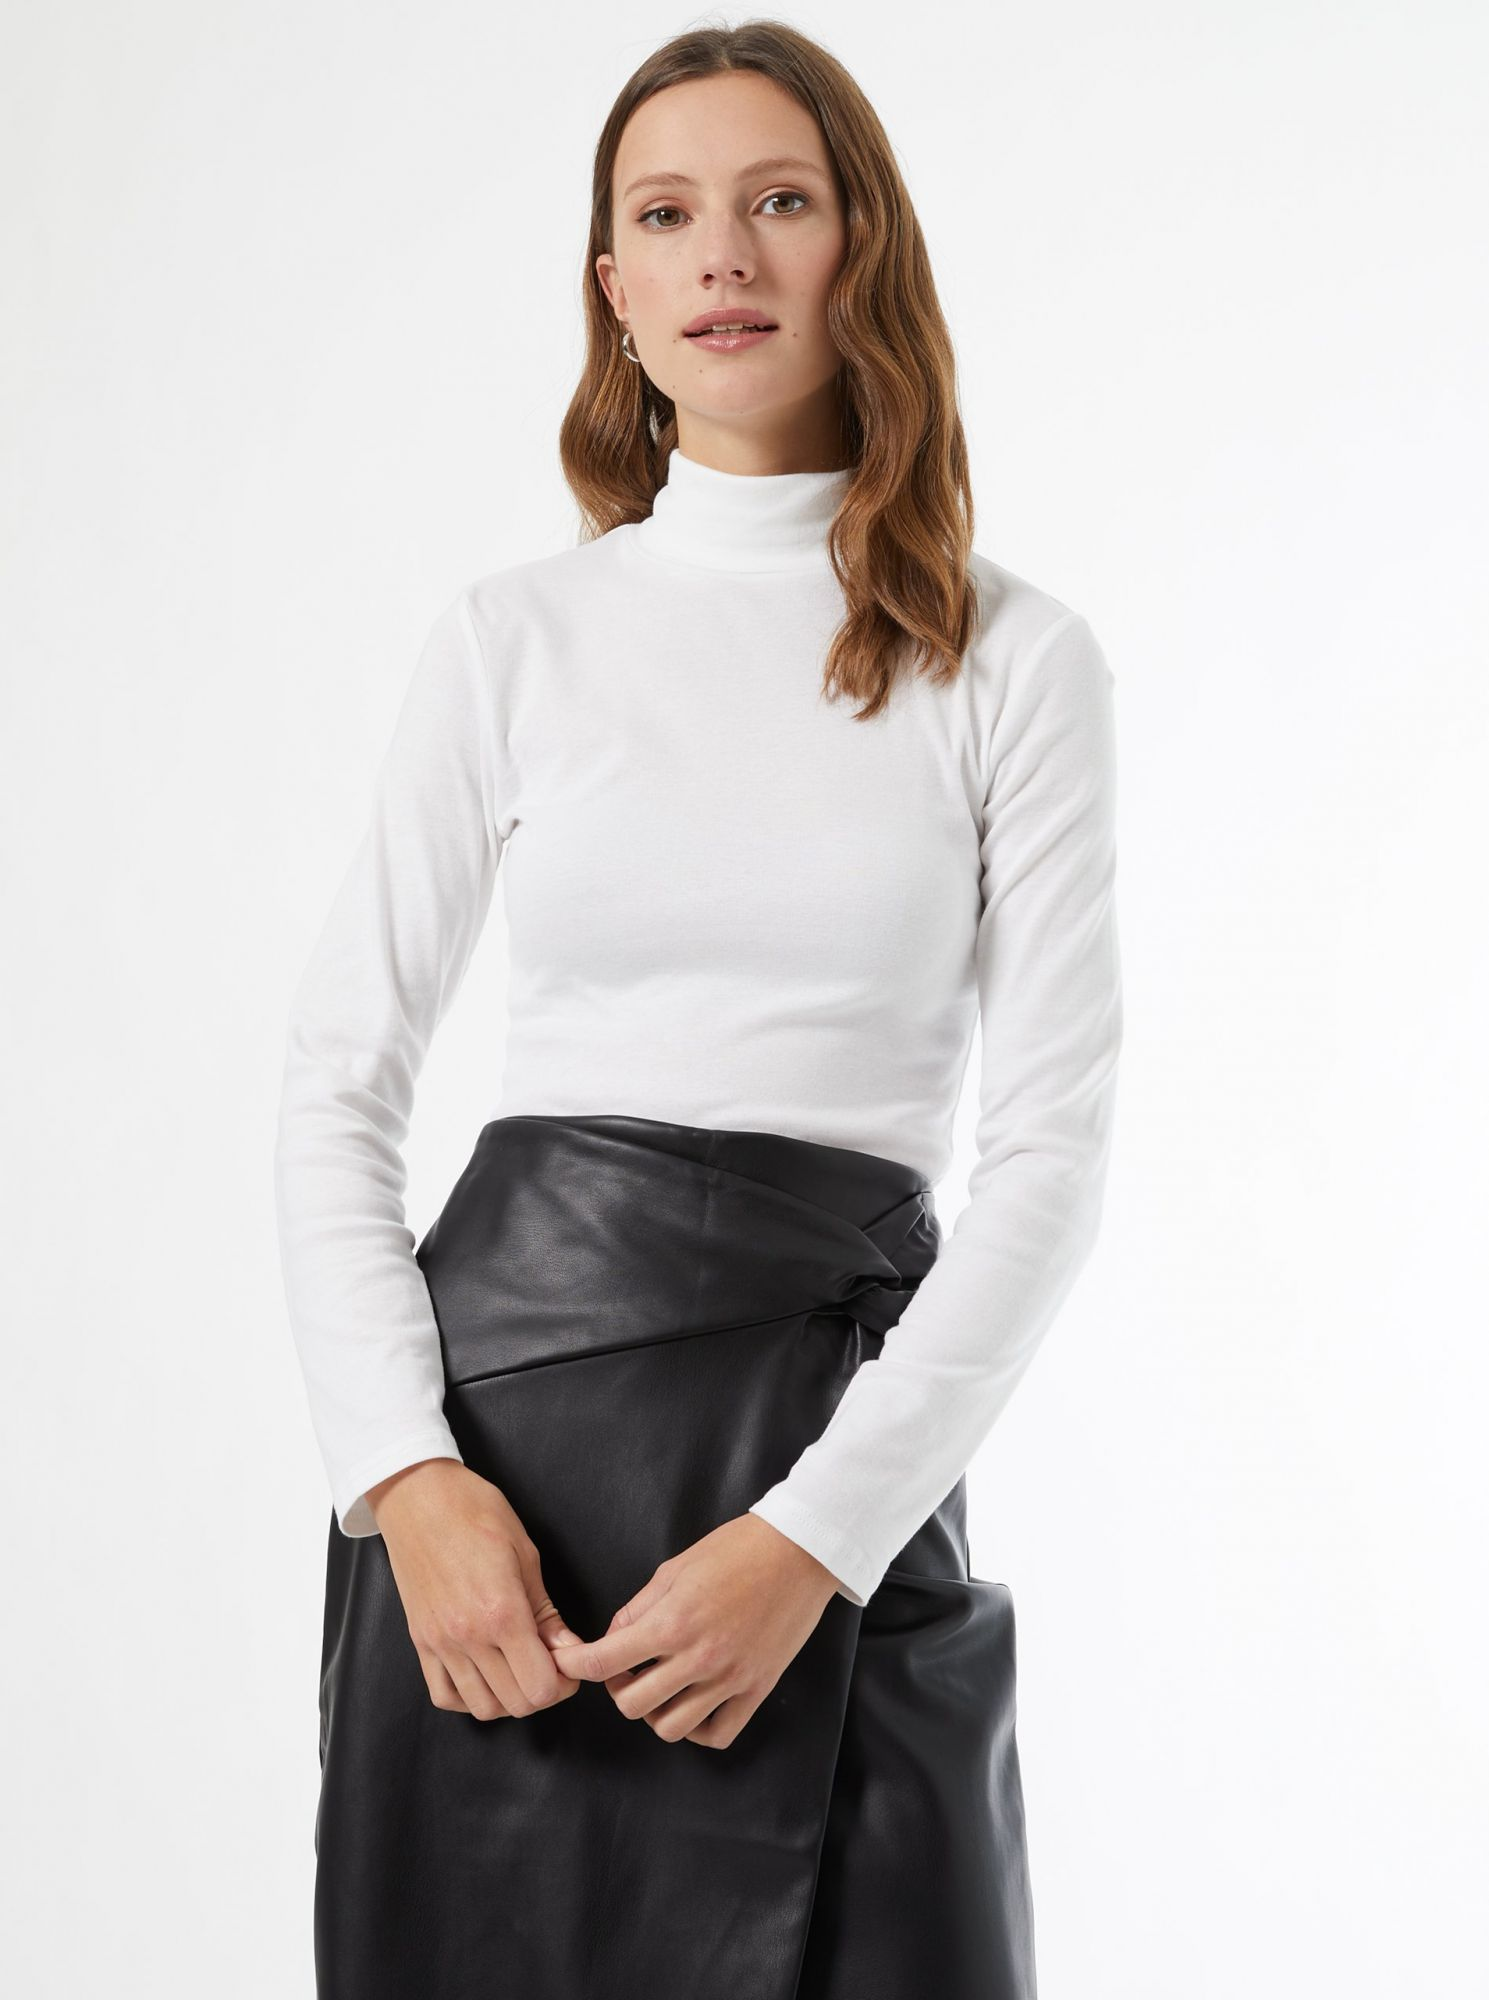 White T-shirt with Dorothy Perkins turtleneck